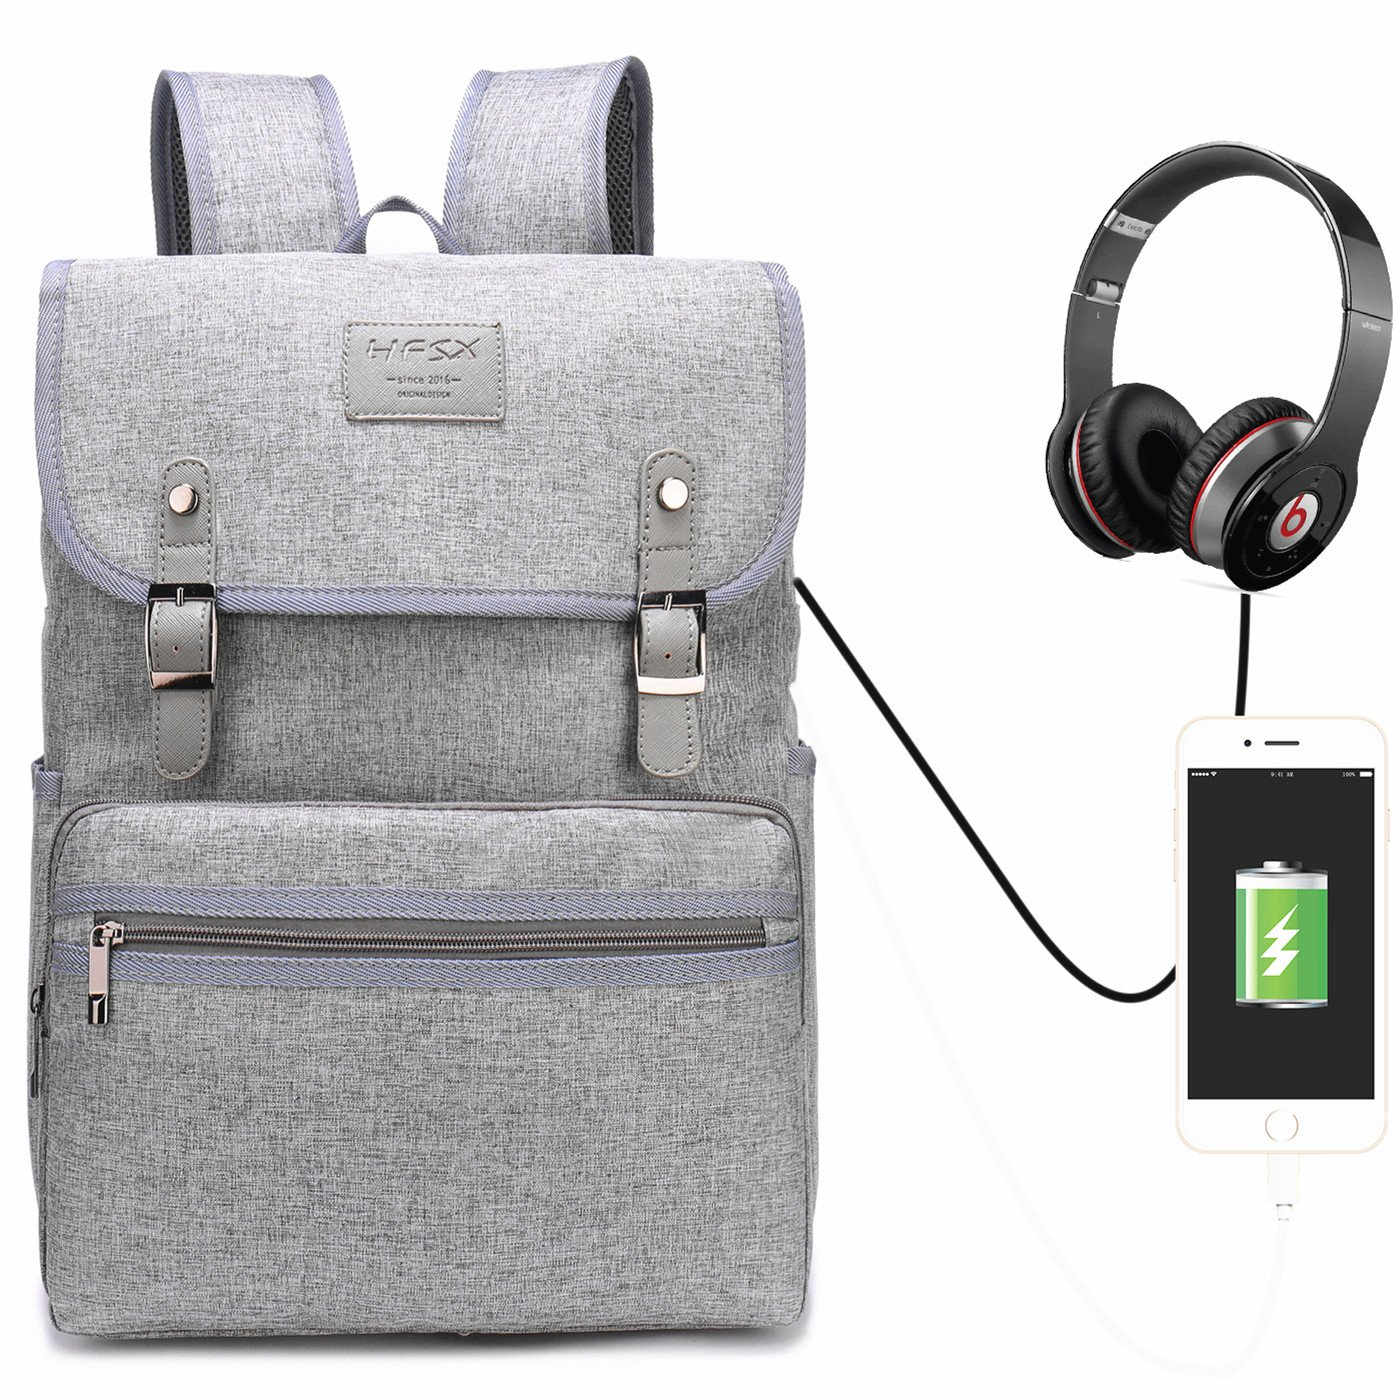 Laptop Backpack Men Women Business Travel Computer Backpack School College Bookbag Stylish Water Resistant Vintage Backpack with USB Port Fashion GREY Fits 15.6 Inch Laptop and Notebook by HFSX